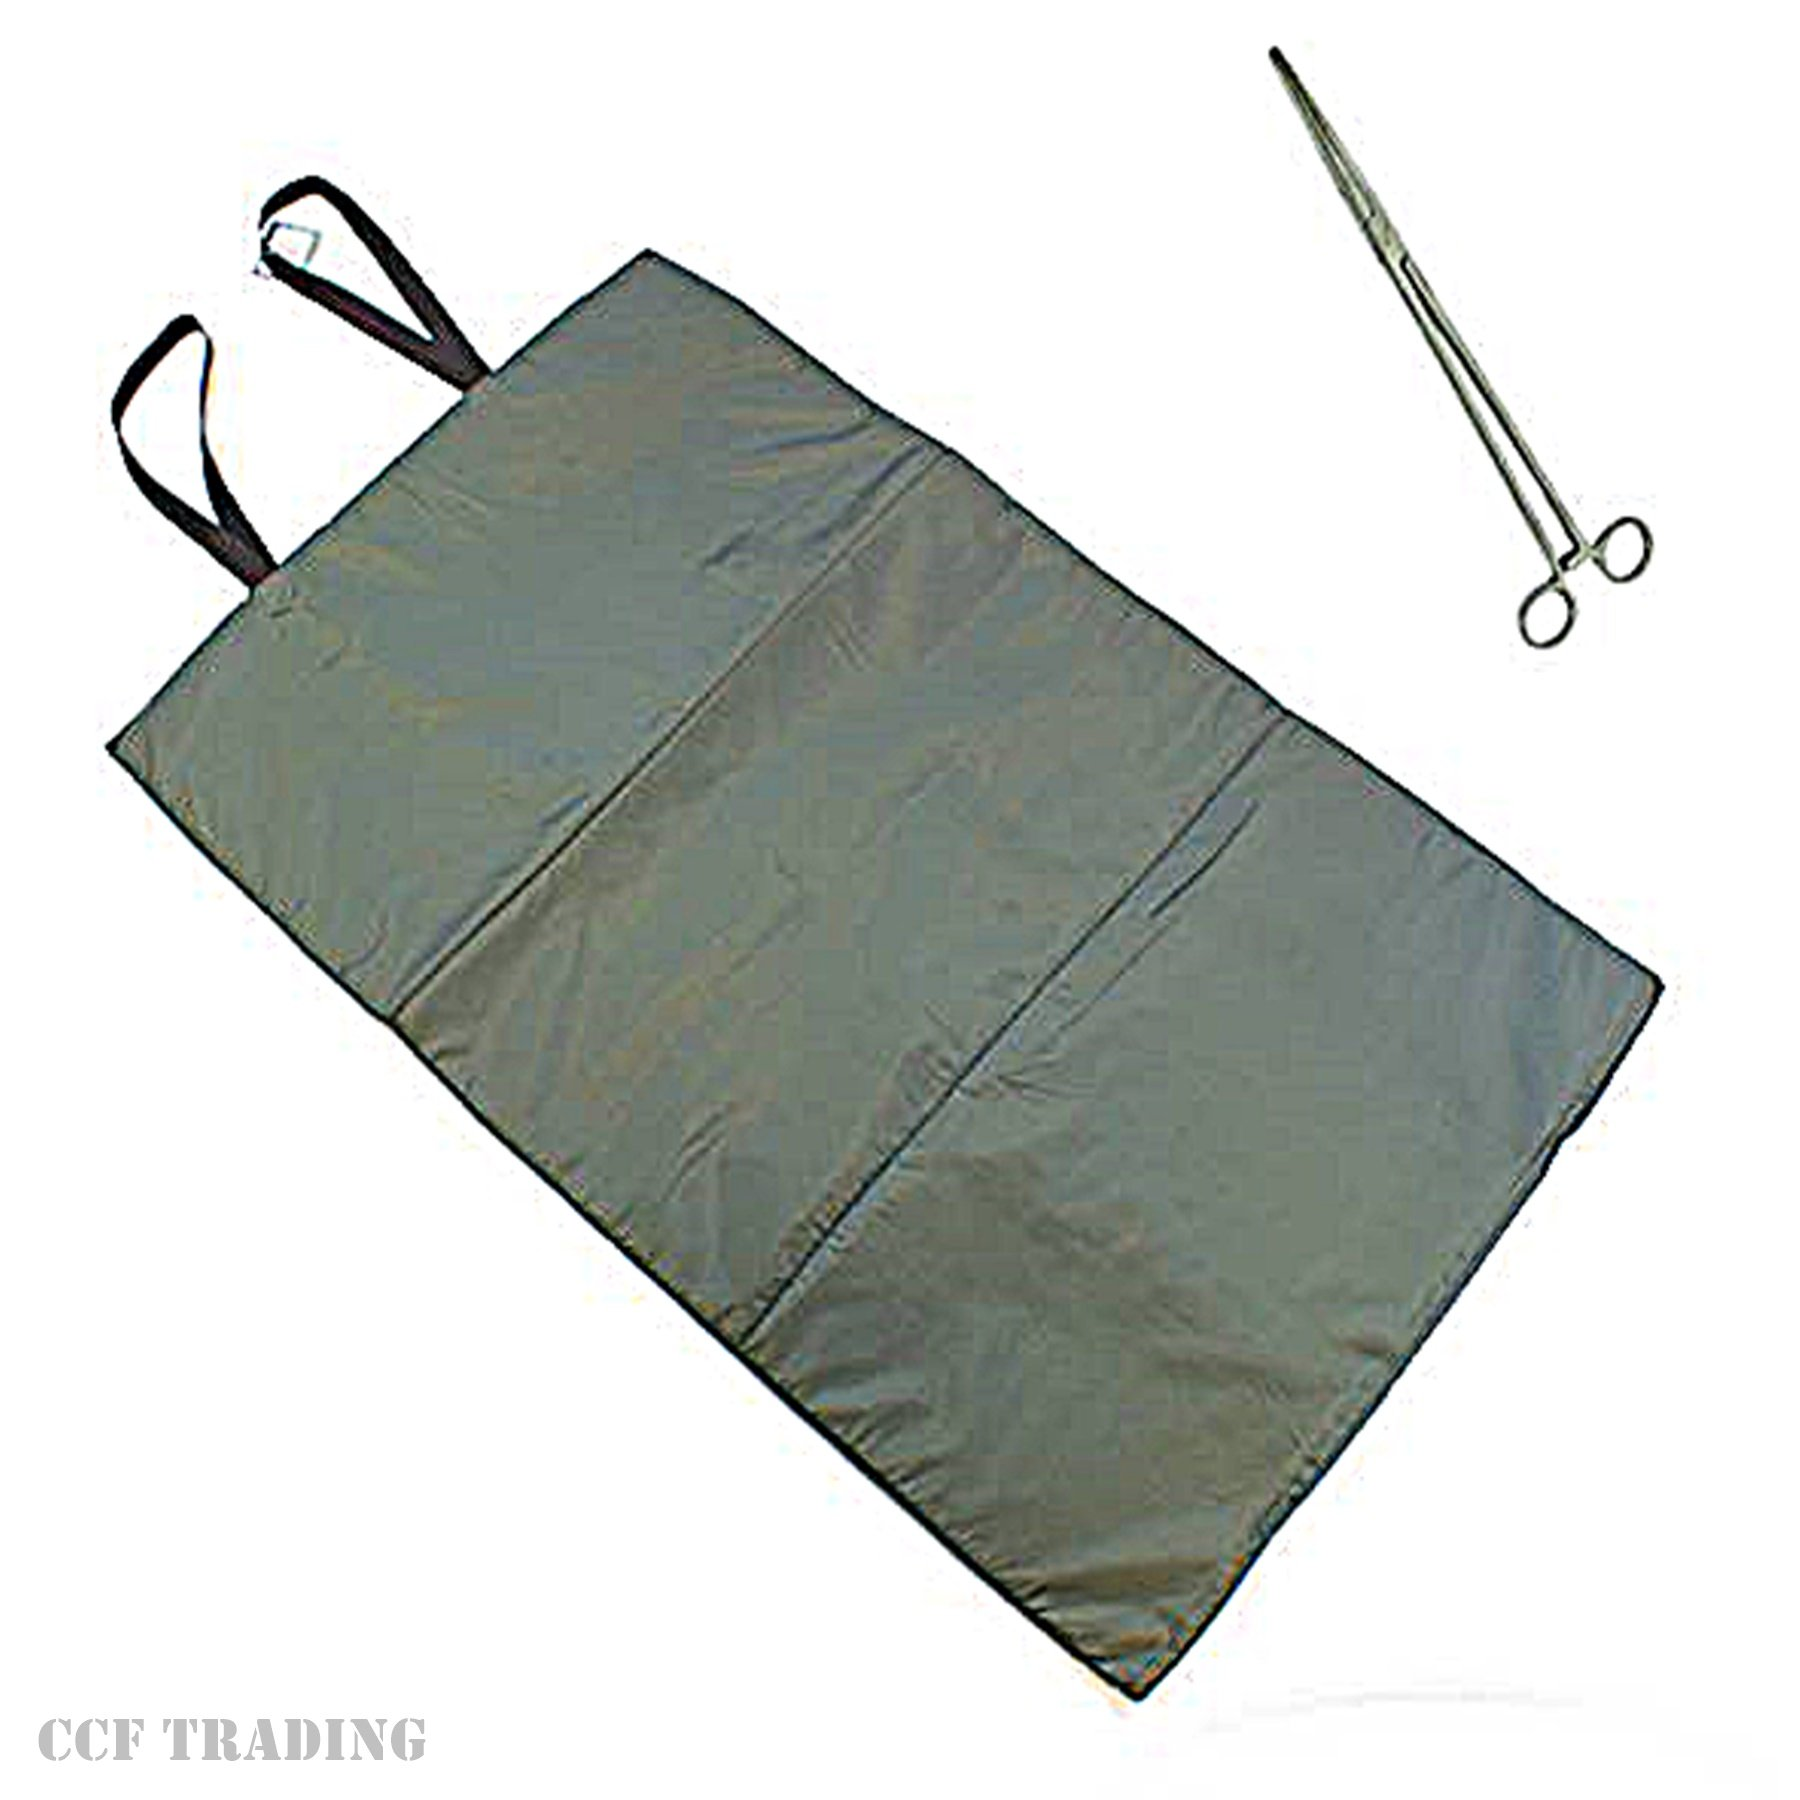 GNT ngt Unhooking Landing Mat & Forceps Fishing Tackle 10'' Straight